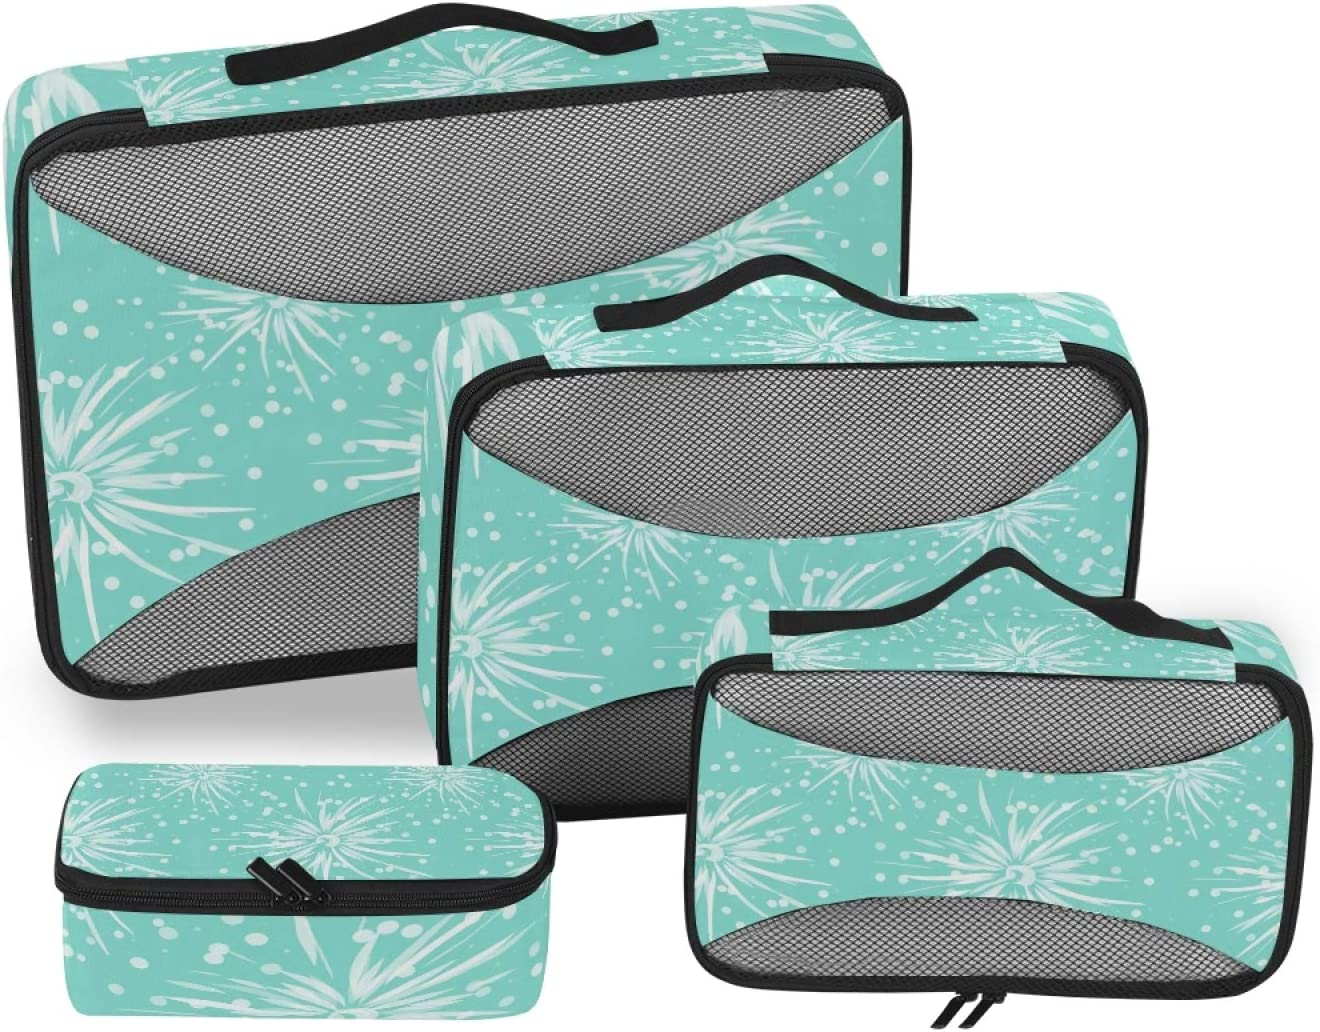 4 Set Packing Cubes Free Bargain sale shipping with Toiletry - Bag Flowers Art White Travel